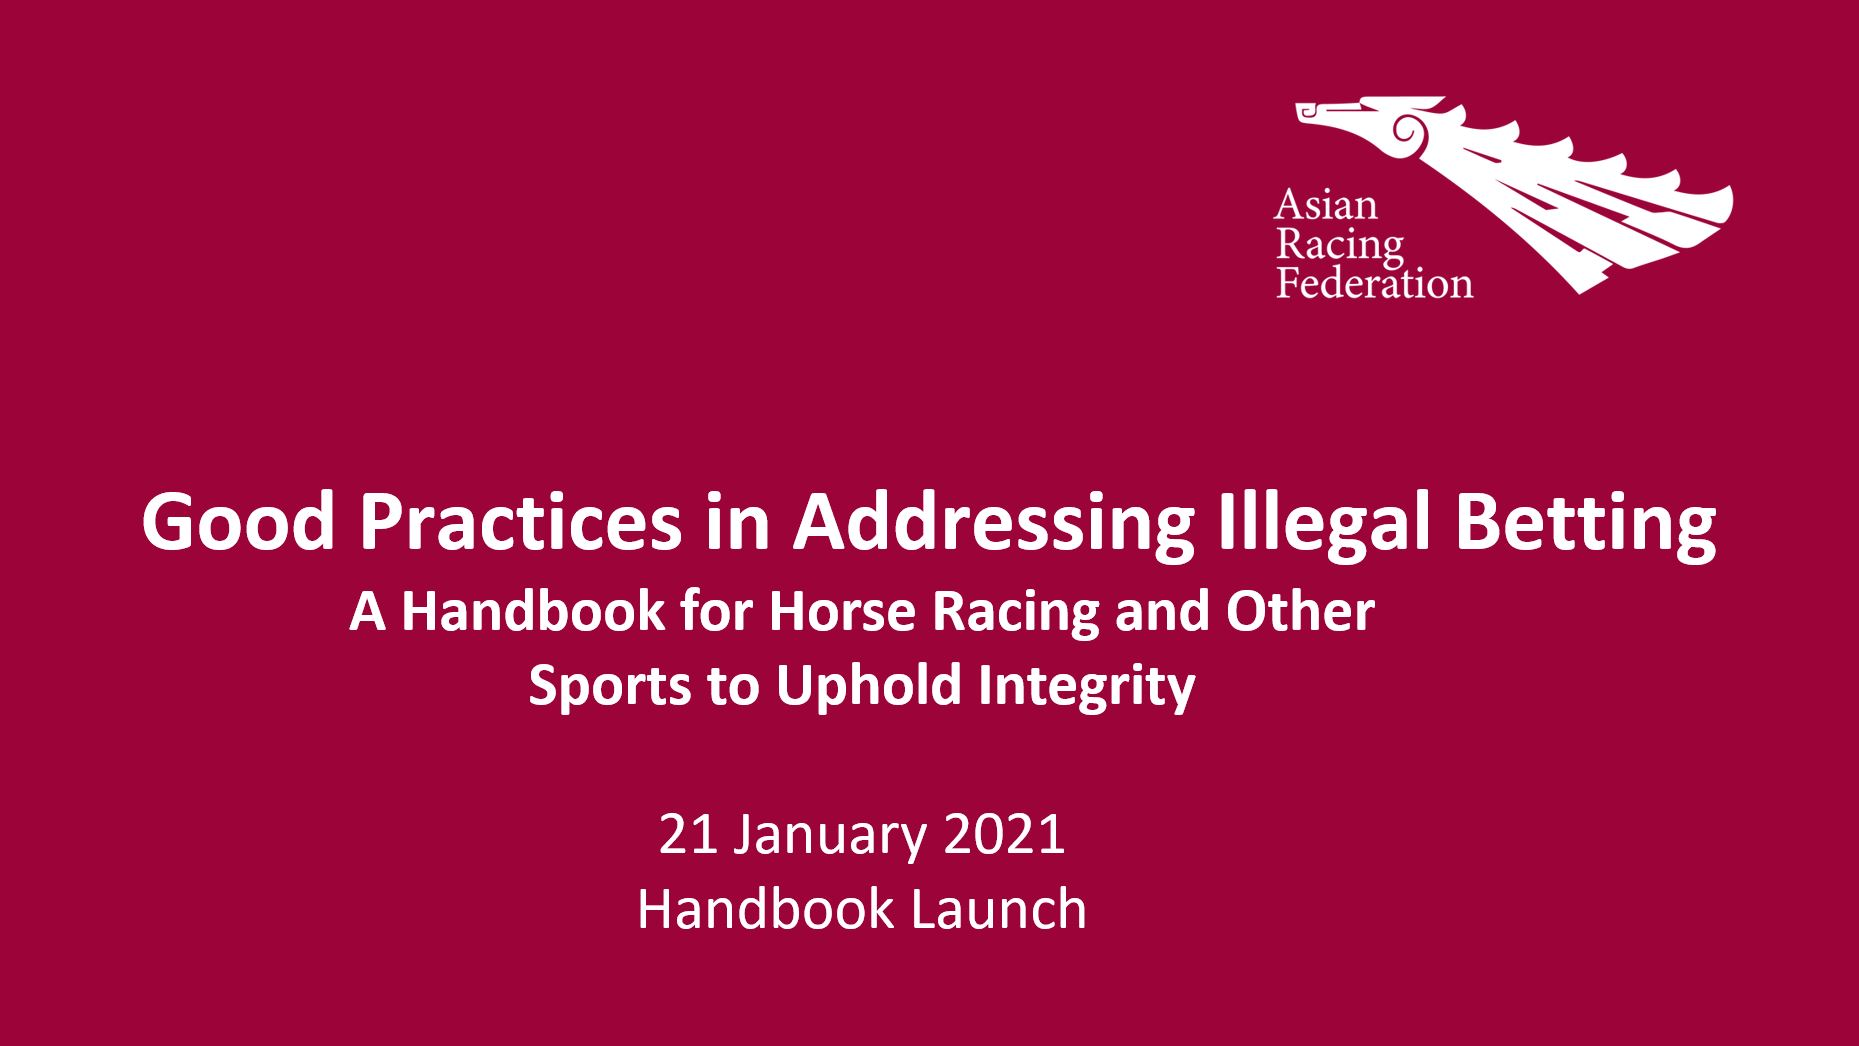 ARF Handbook Launch: Good Practices in Addressing Illegal Betting